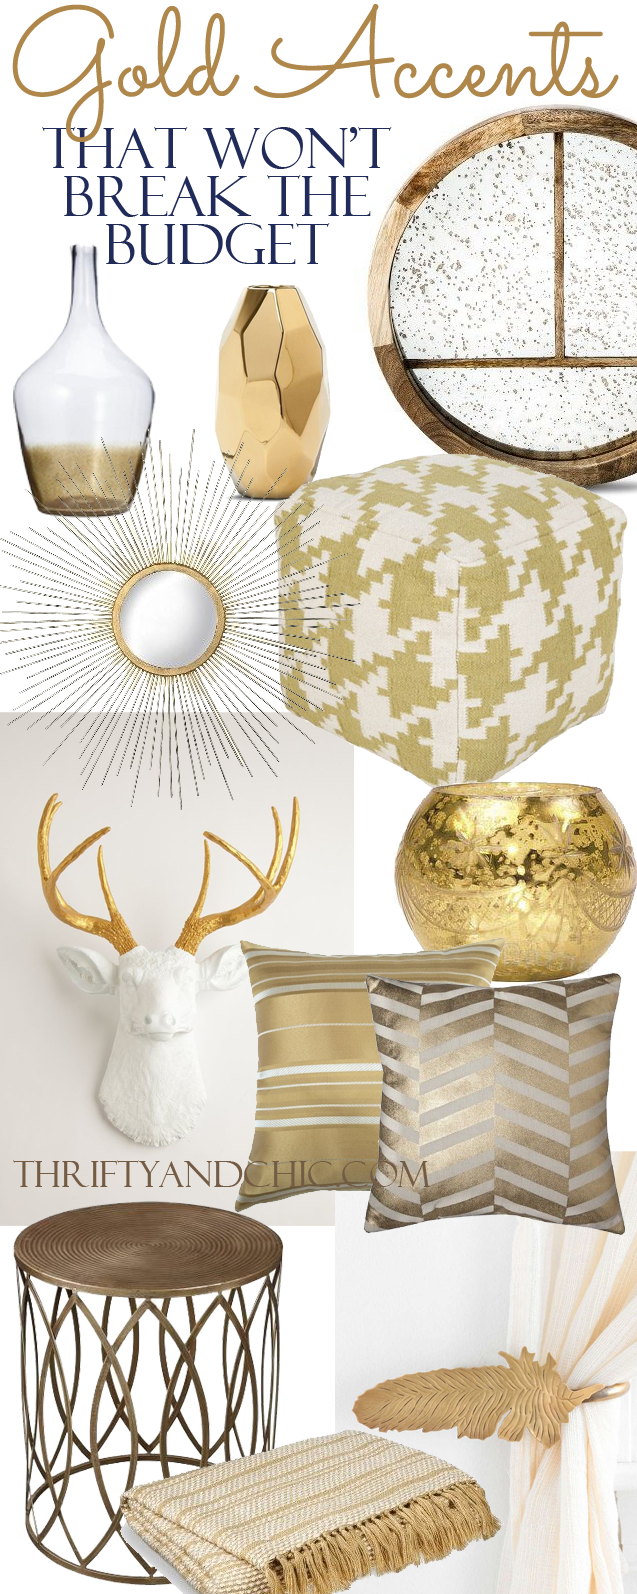 Thrifty and chic diy projects and home decor Home decor gold